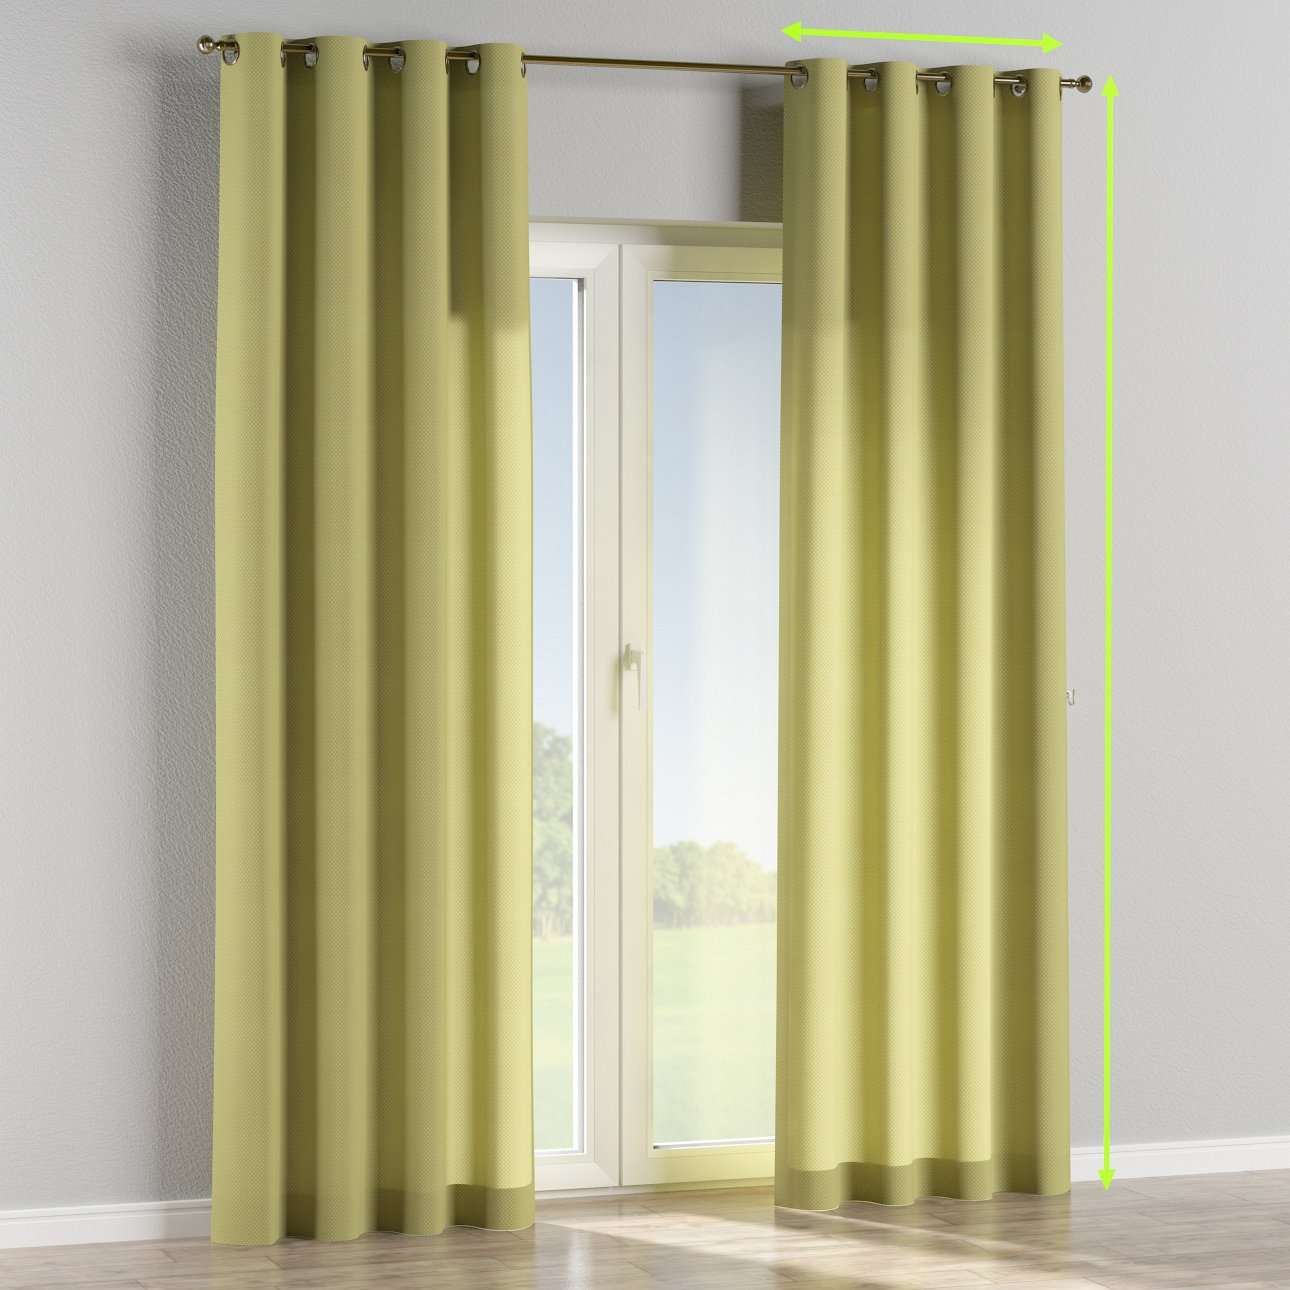 Eyelet lined curtains in collection Ashley, fabric: 137-51